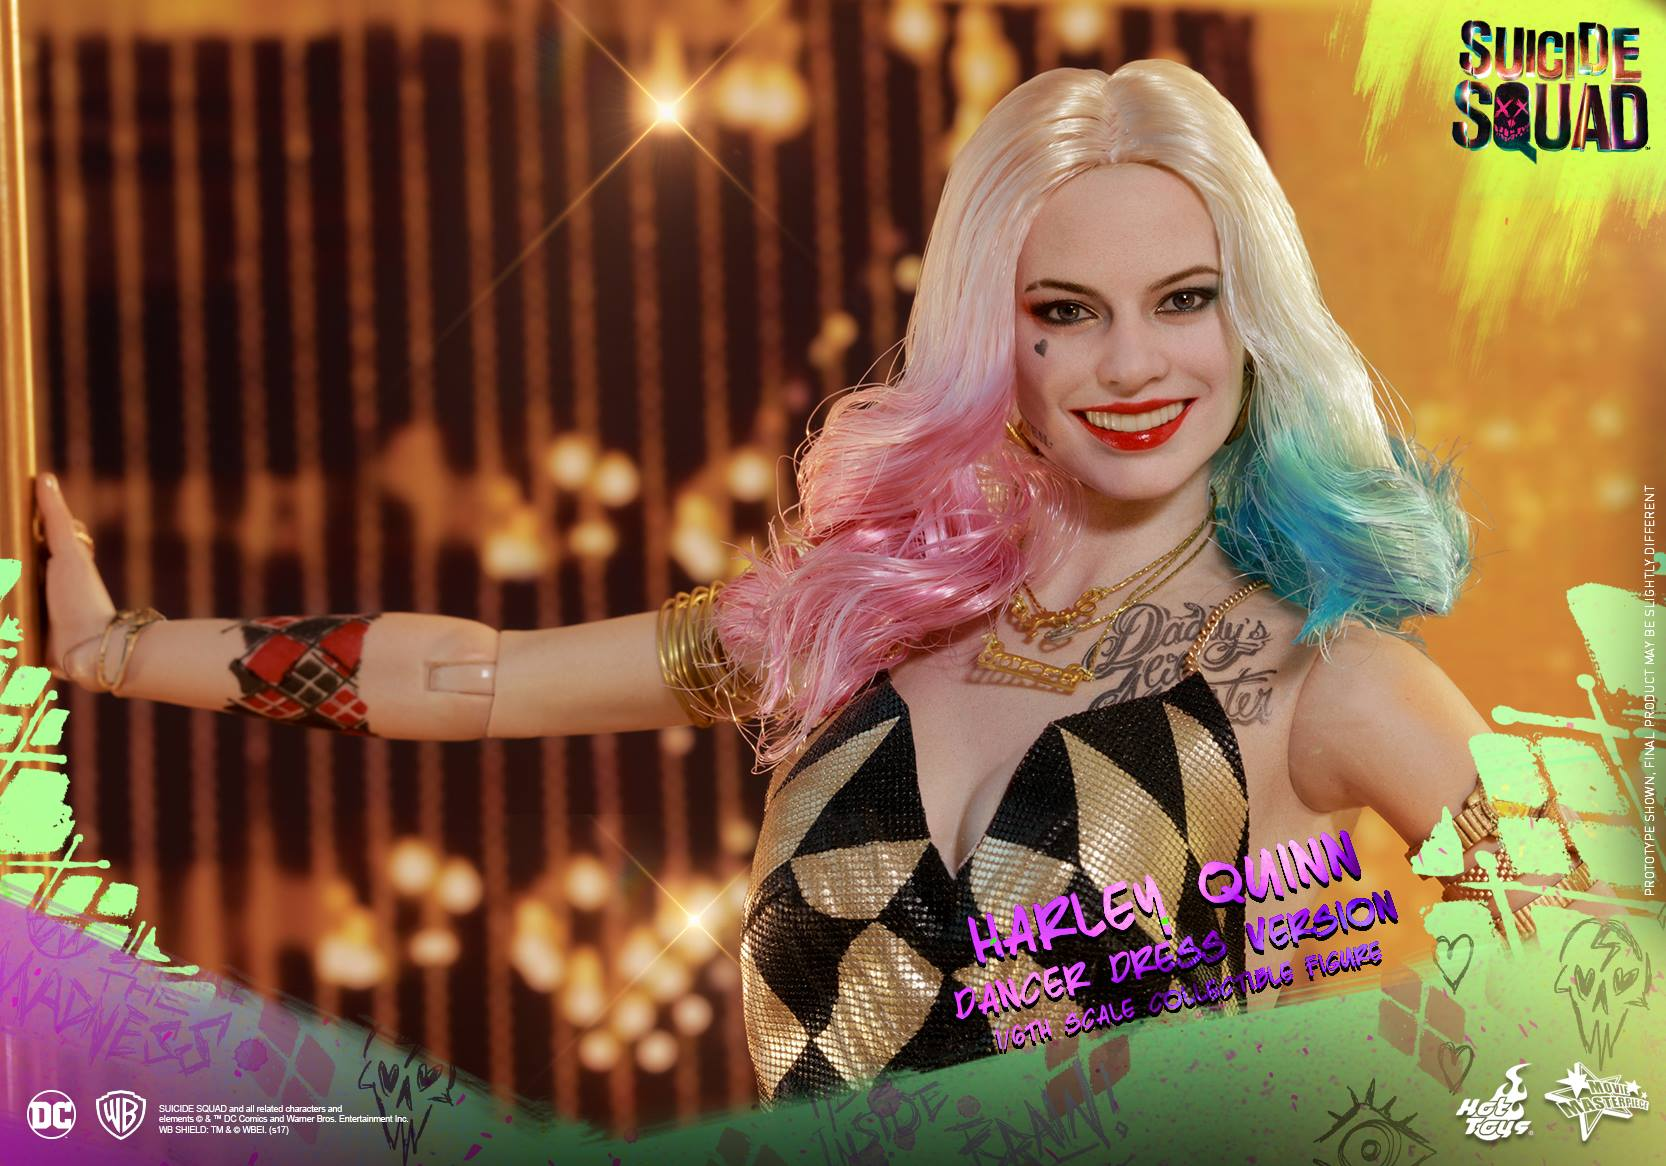 Hot Toys Suicide Squad – Harley Quinn Dancer Dress Version Sixth Scale Figure